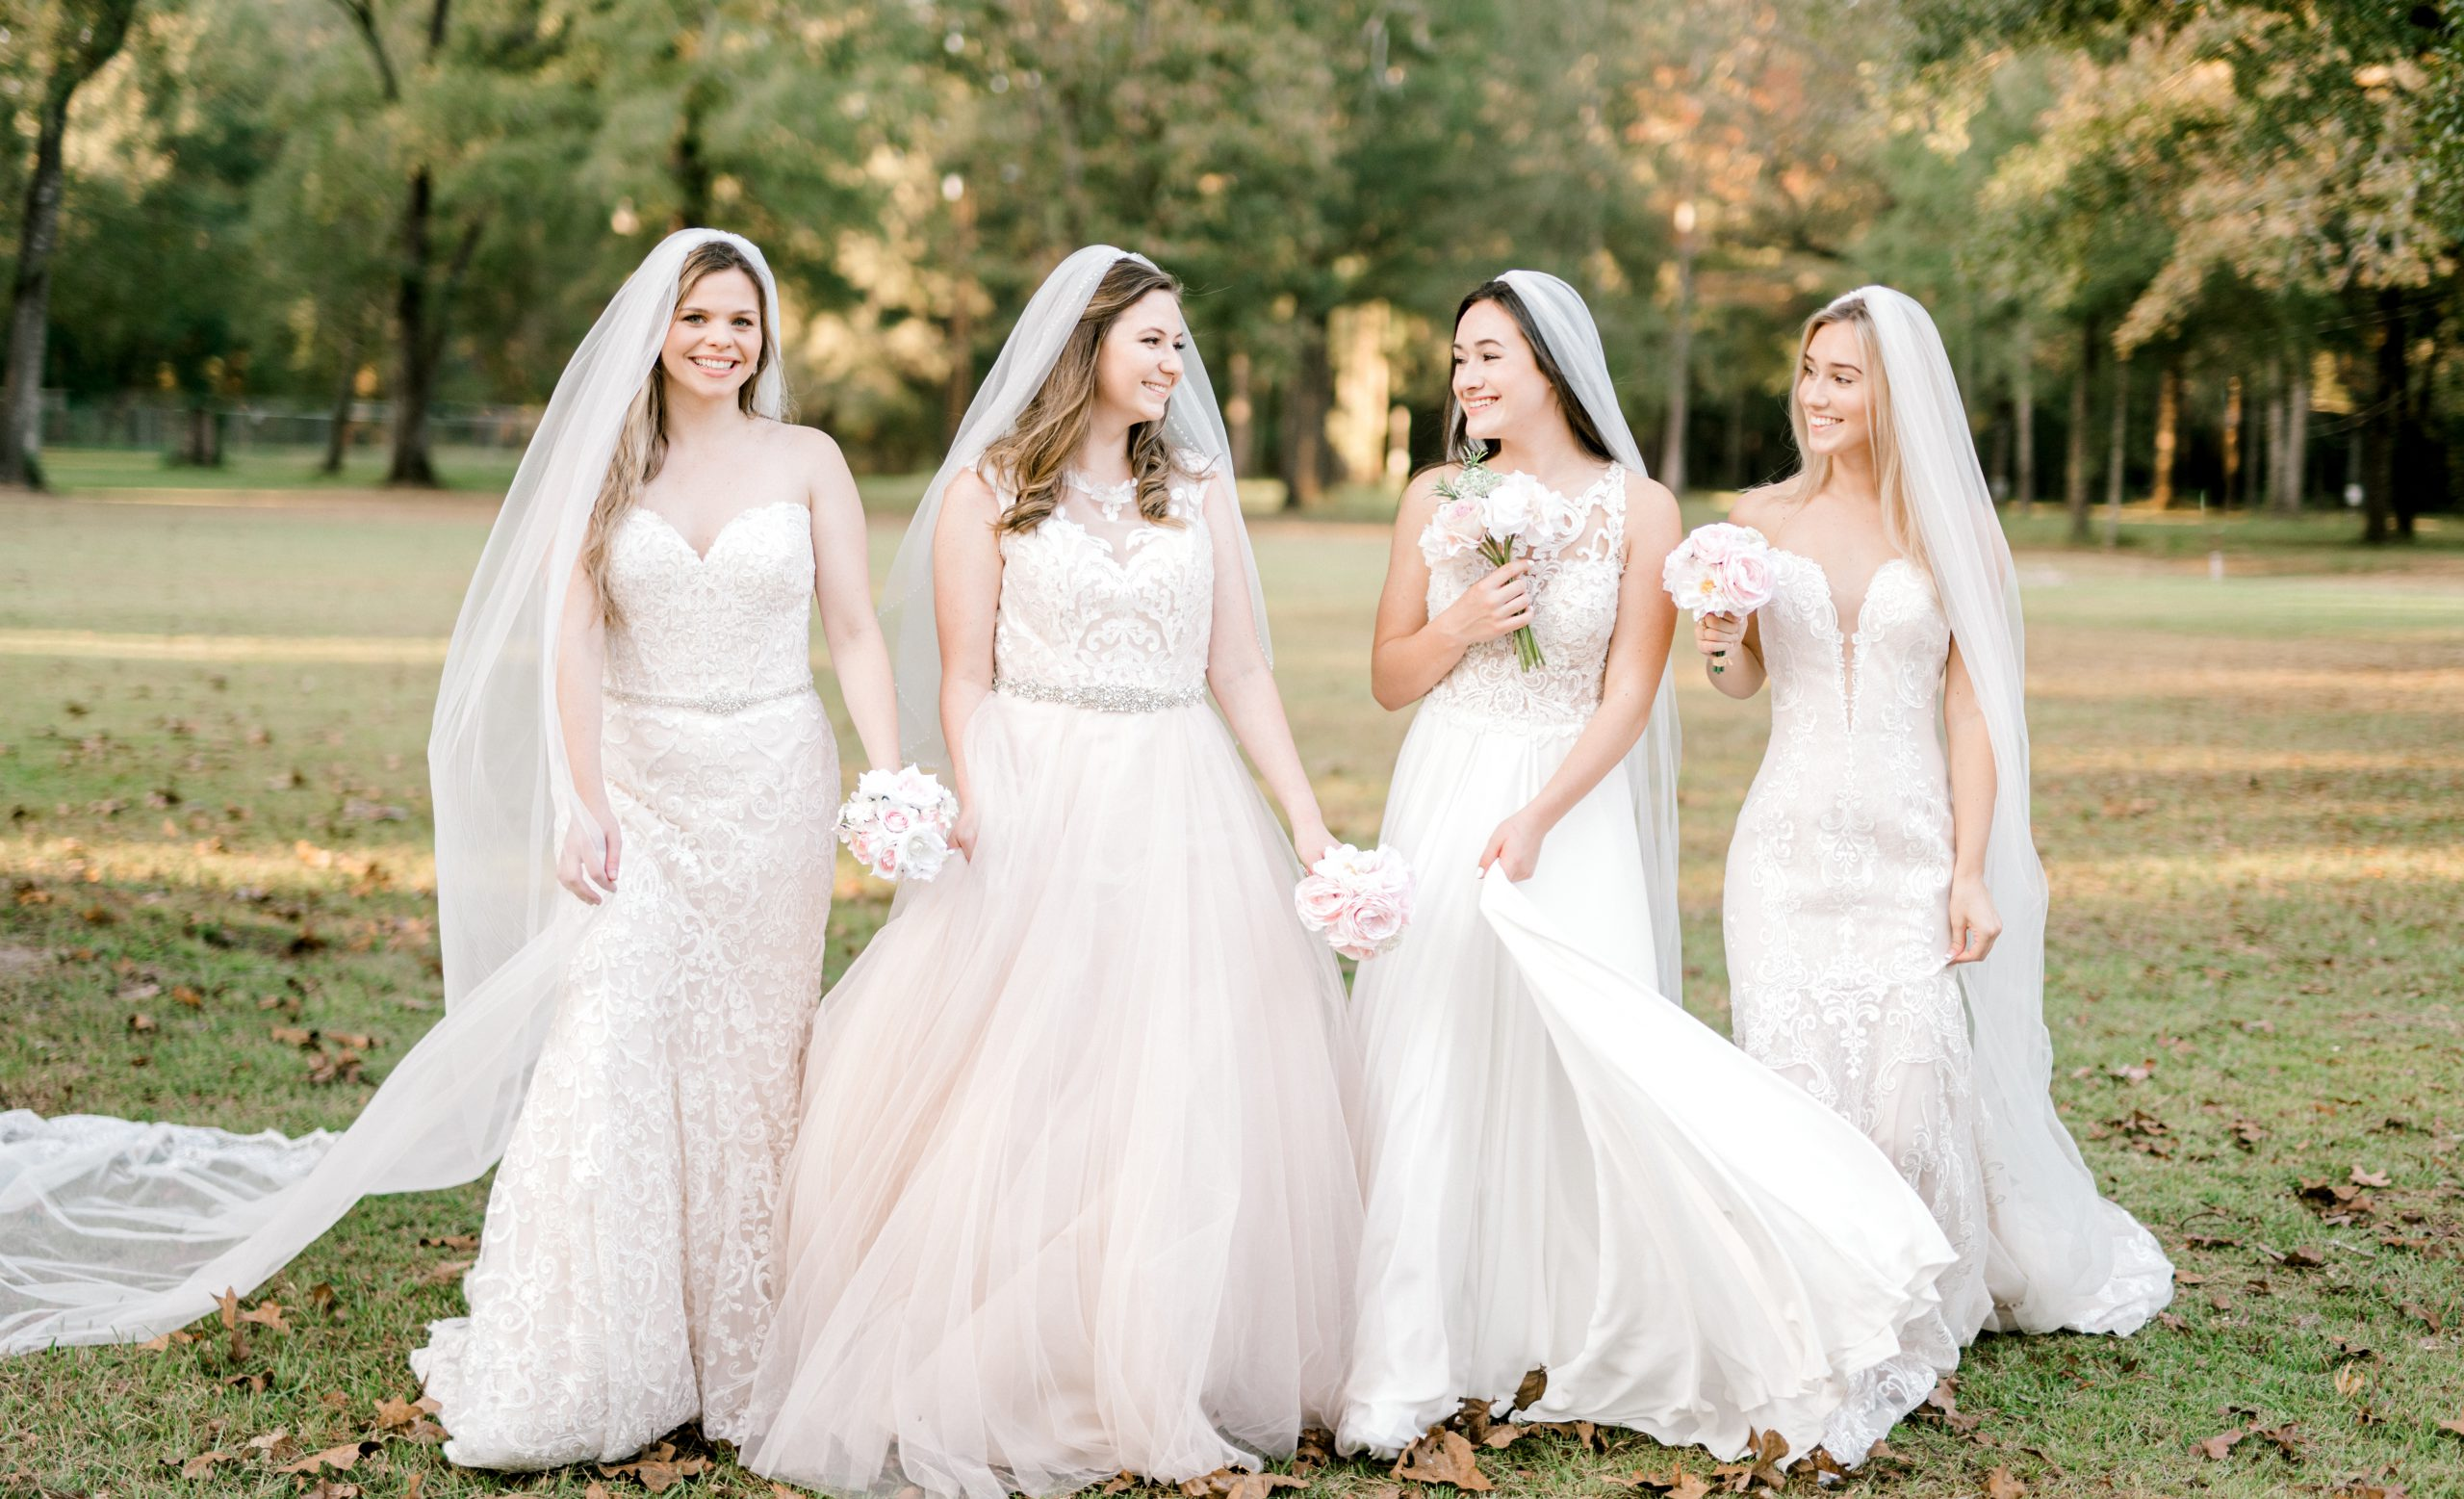 Brides modeling their gowns